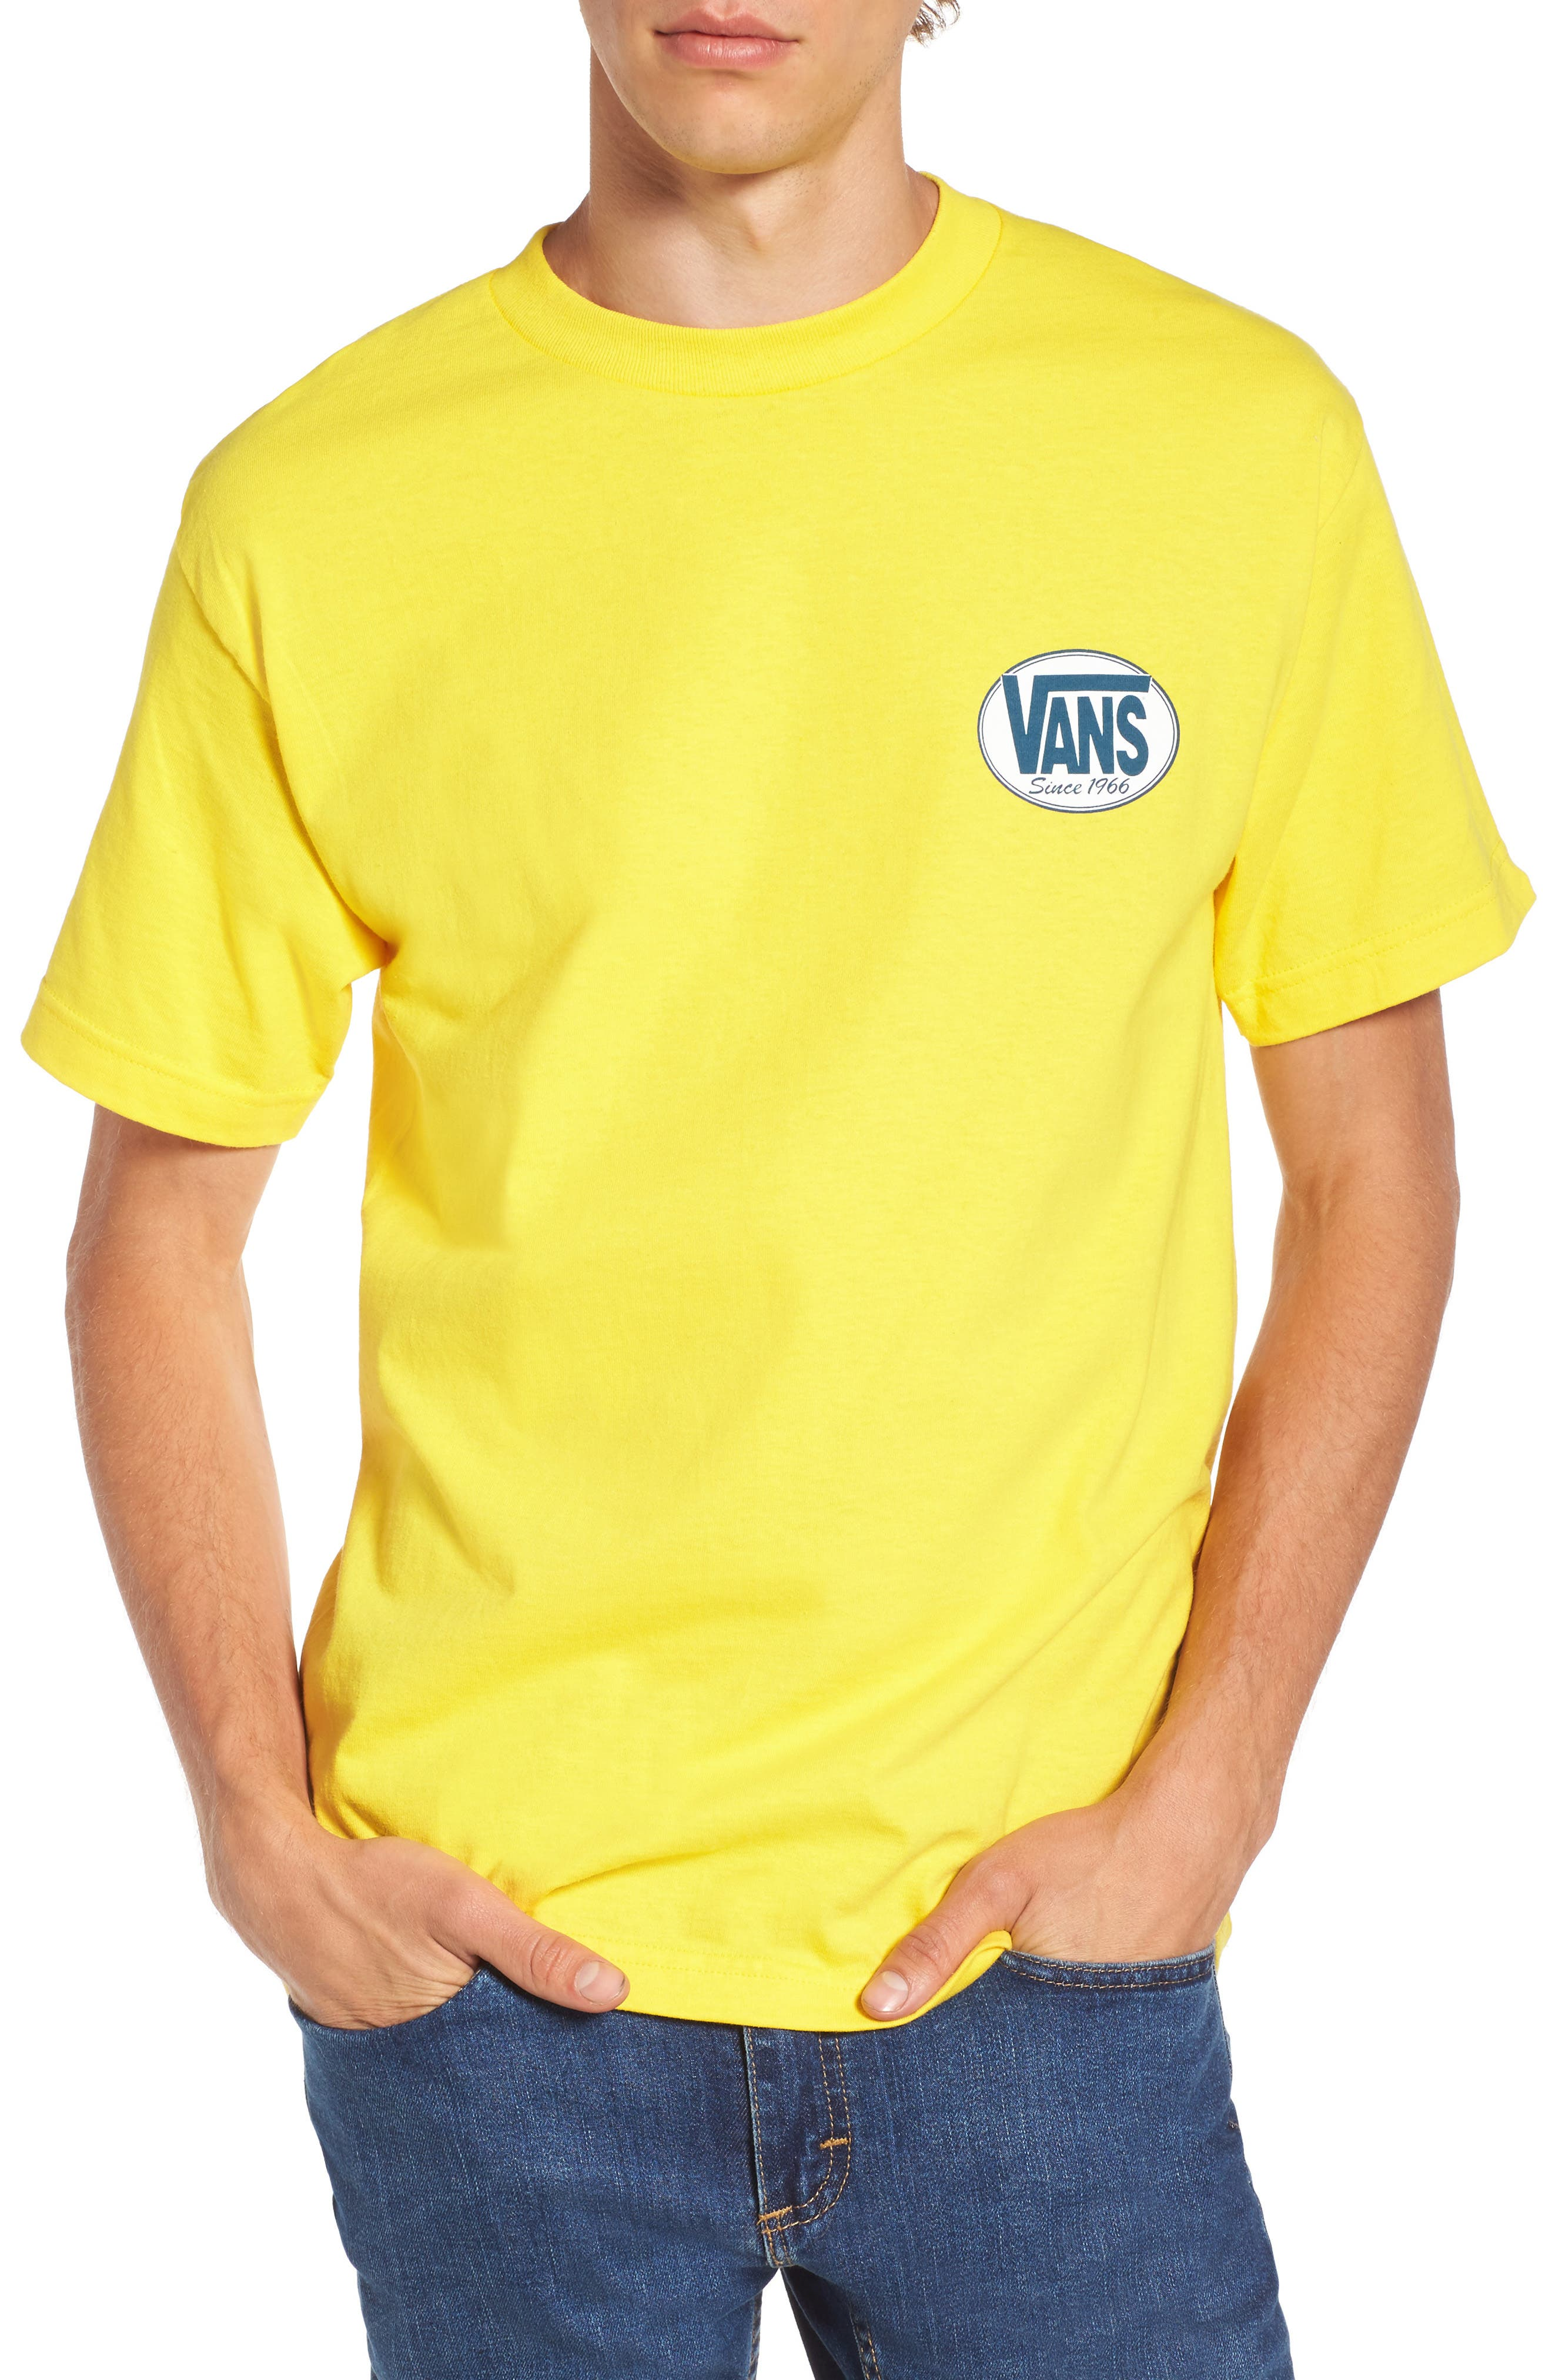 Vans Oval All Logo Graphic T-Shirt